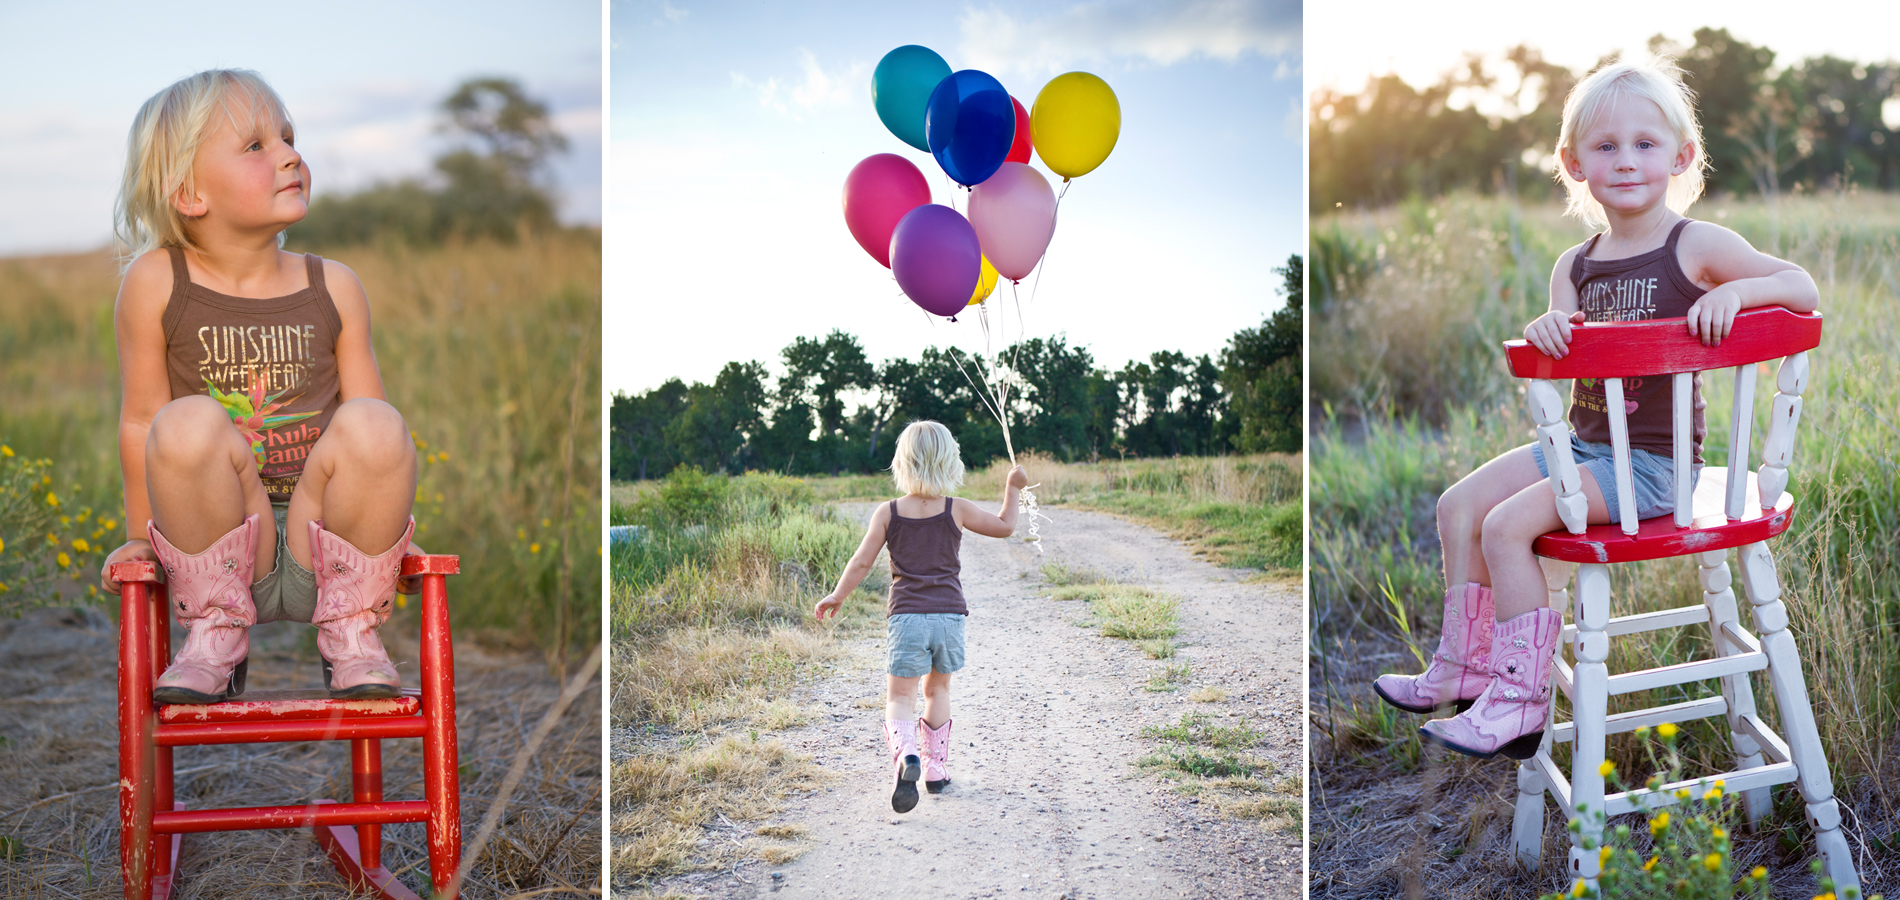 child-the-dairy-balloons